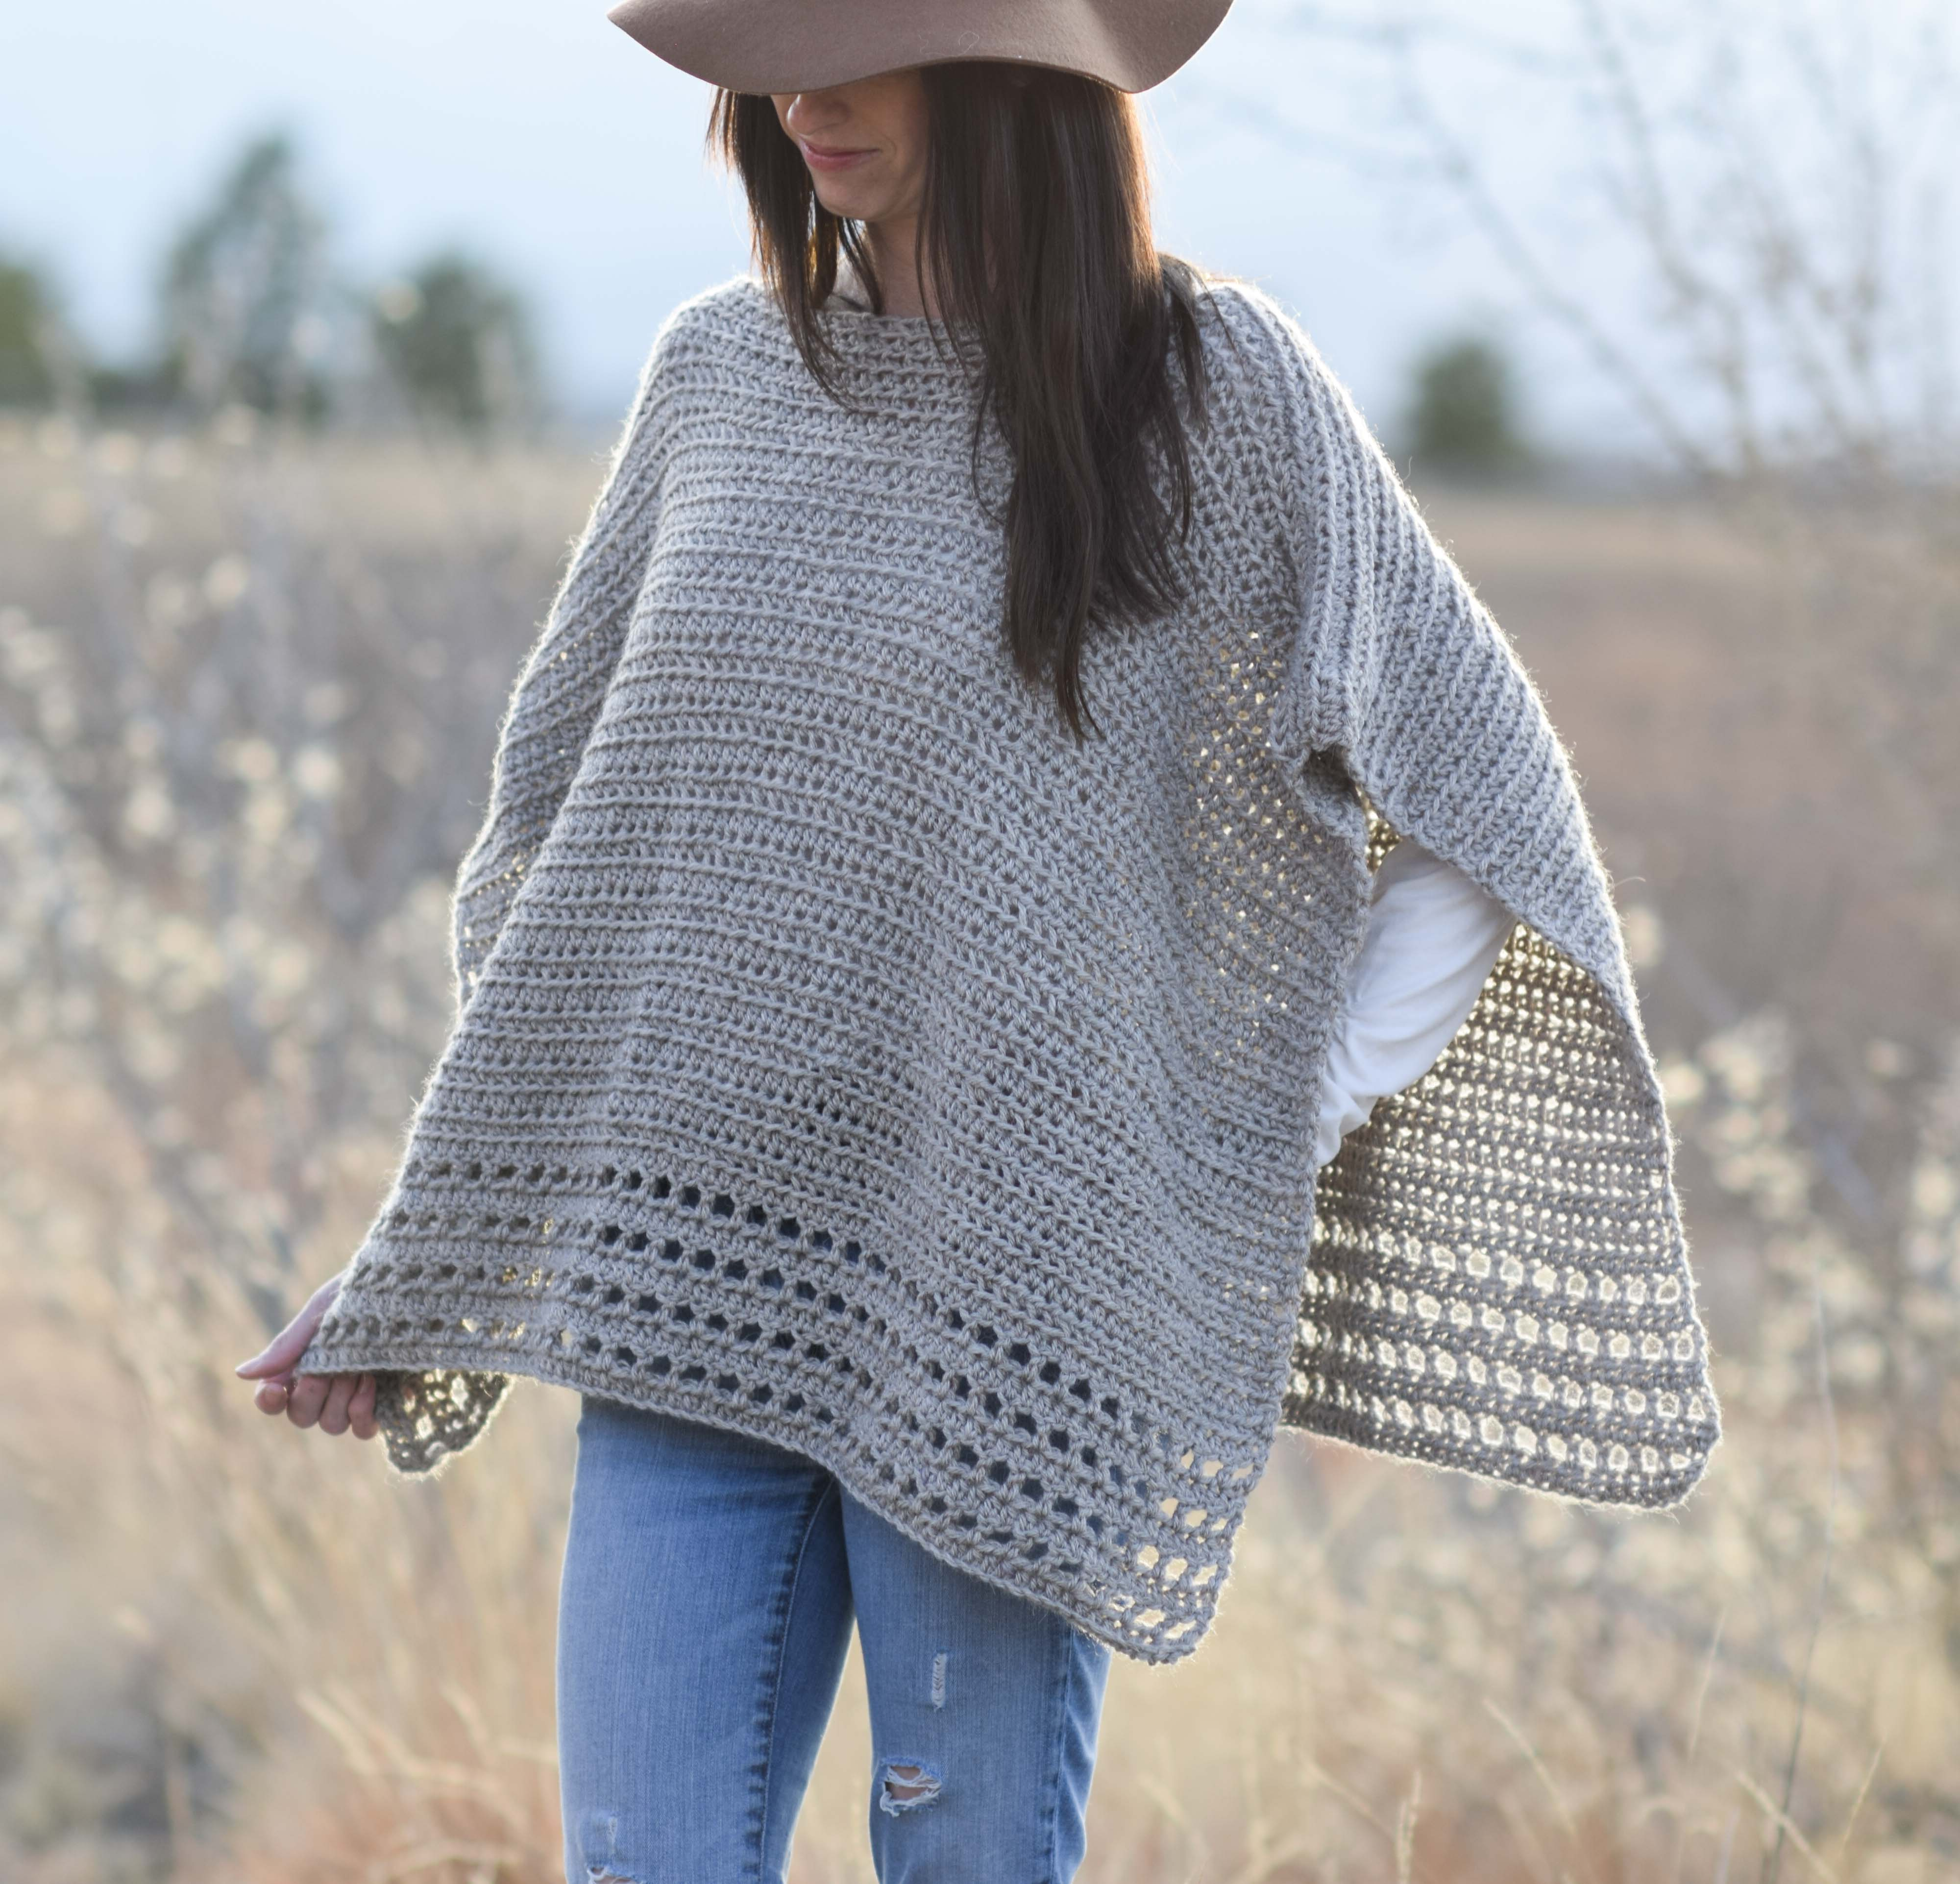 Light Alpaca Poncho Crochet Pattern – Mama In A Stitch